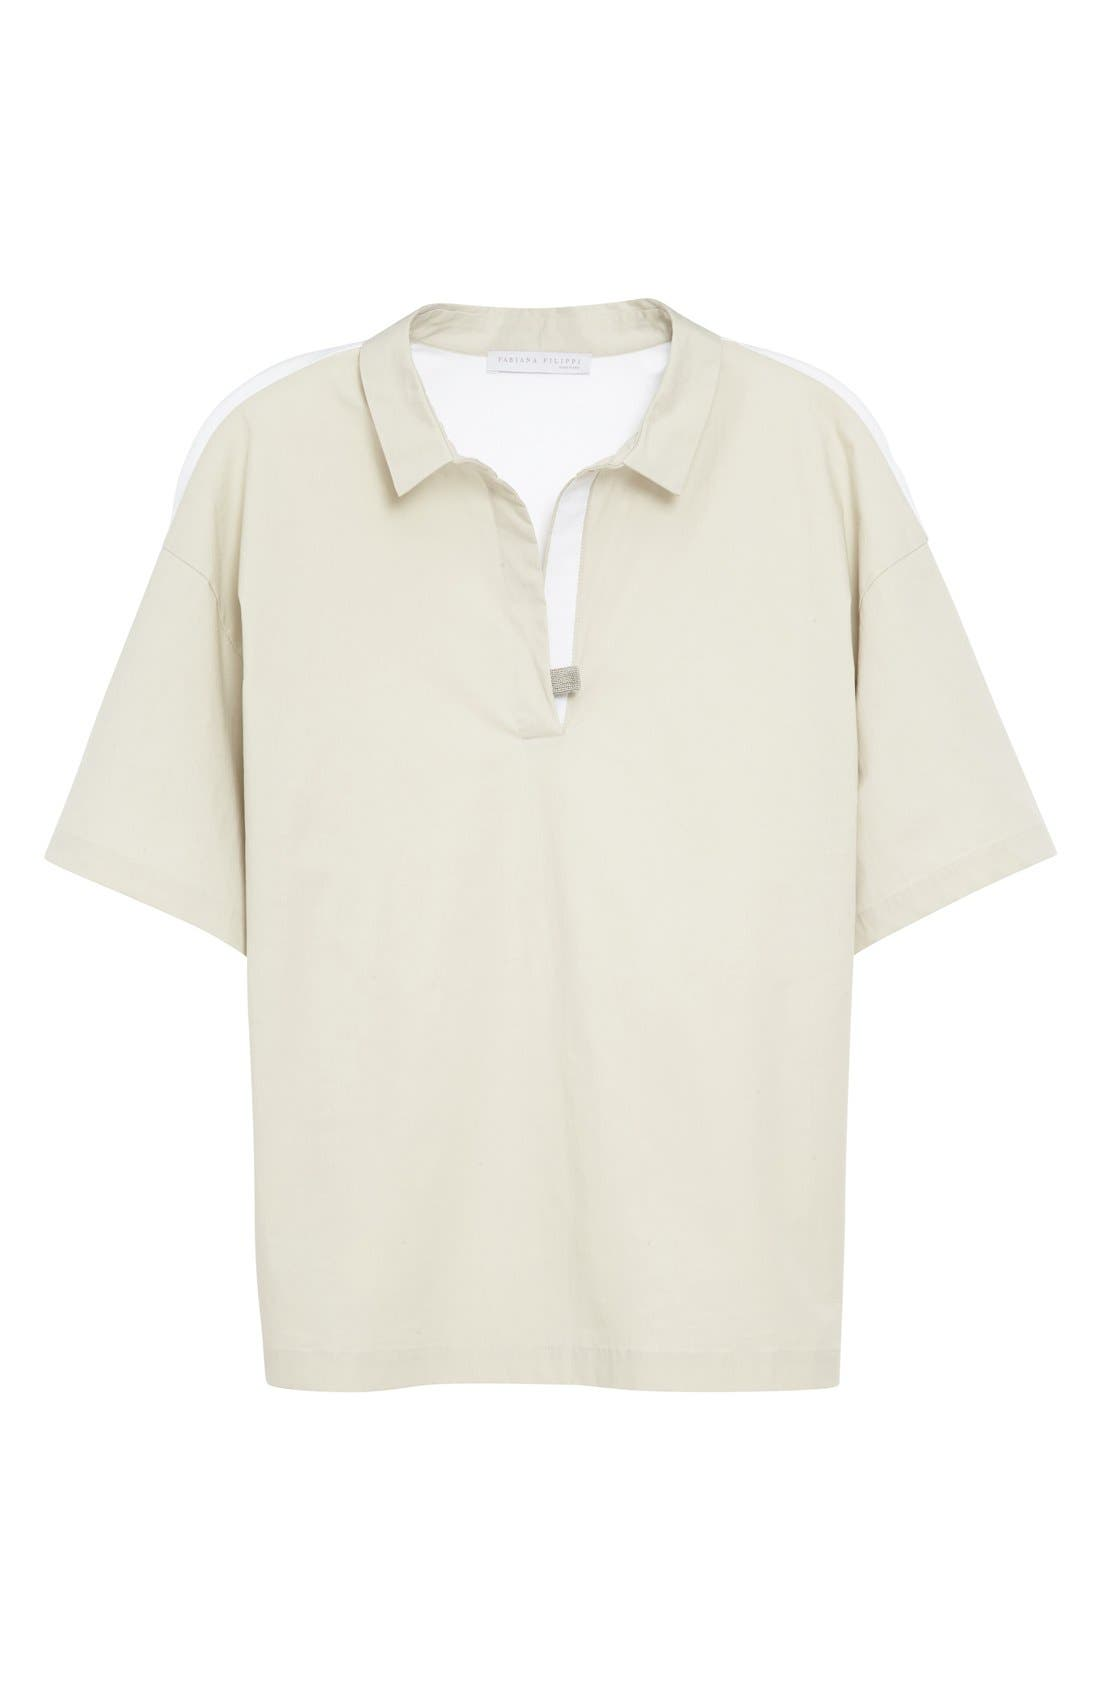 Woven & Jersey Shirt,                             Alternate thumbnail 4, color,                             250